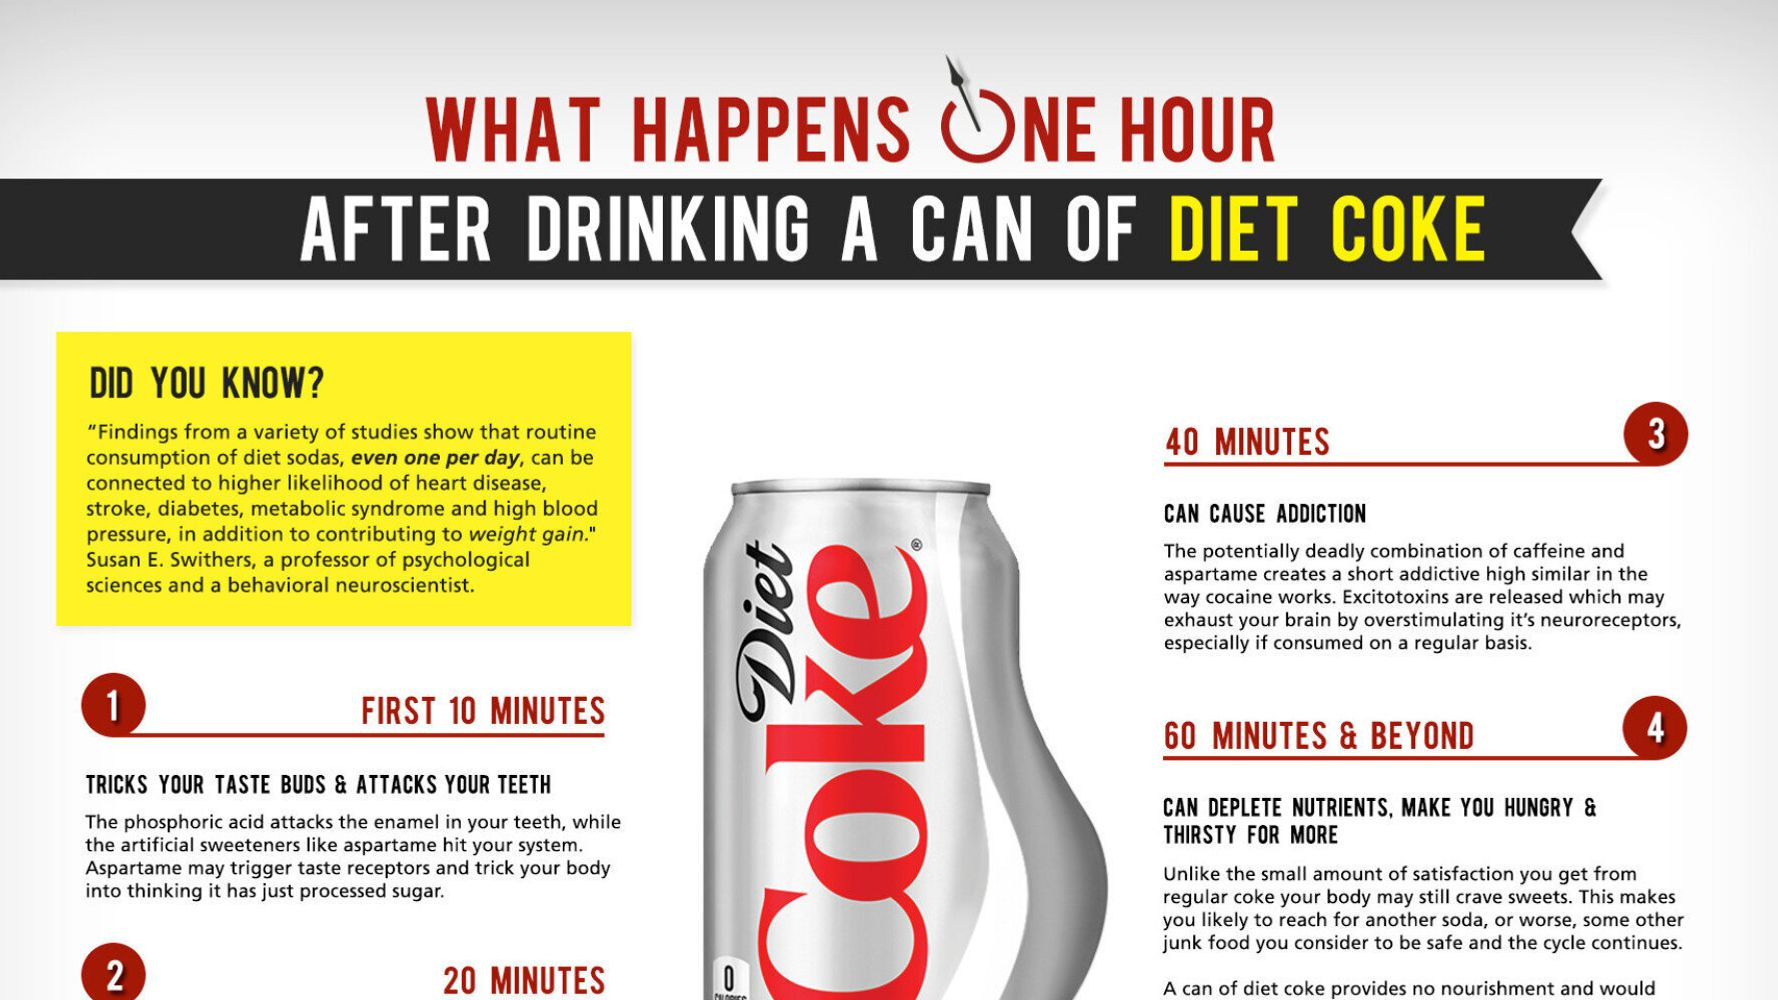 why is diet coke worse